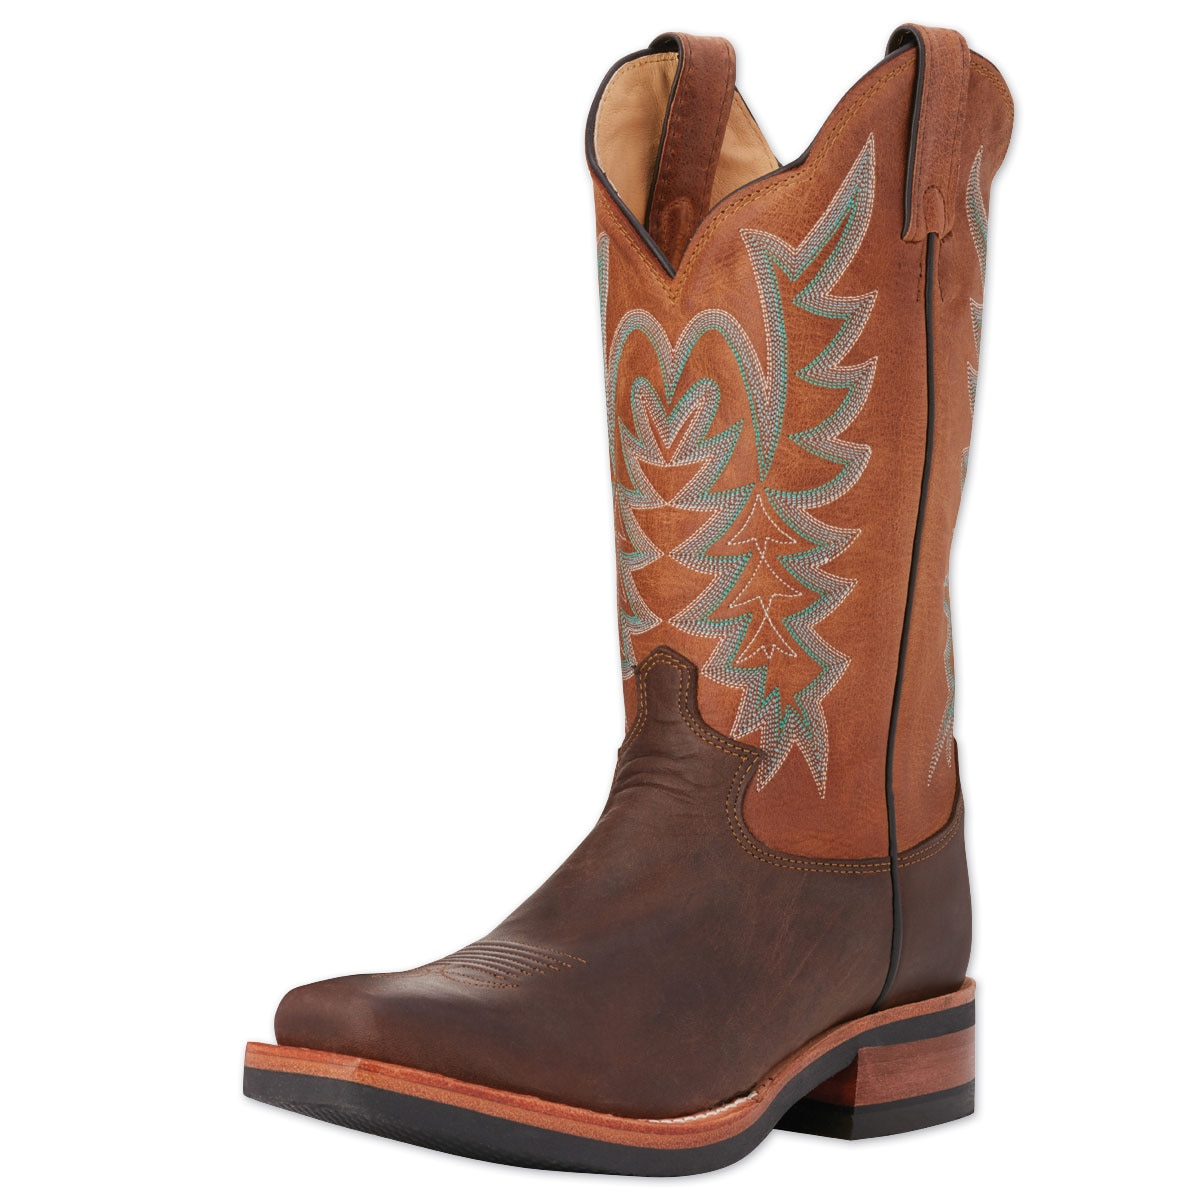 Justin Women's Q-Crepe Boots made Exclusively for SmartPak- Chocolate